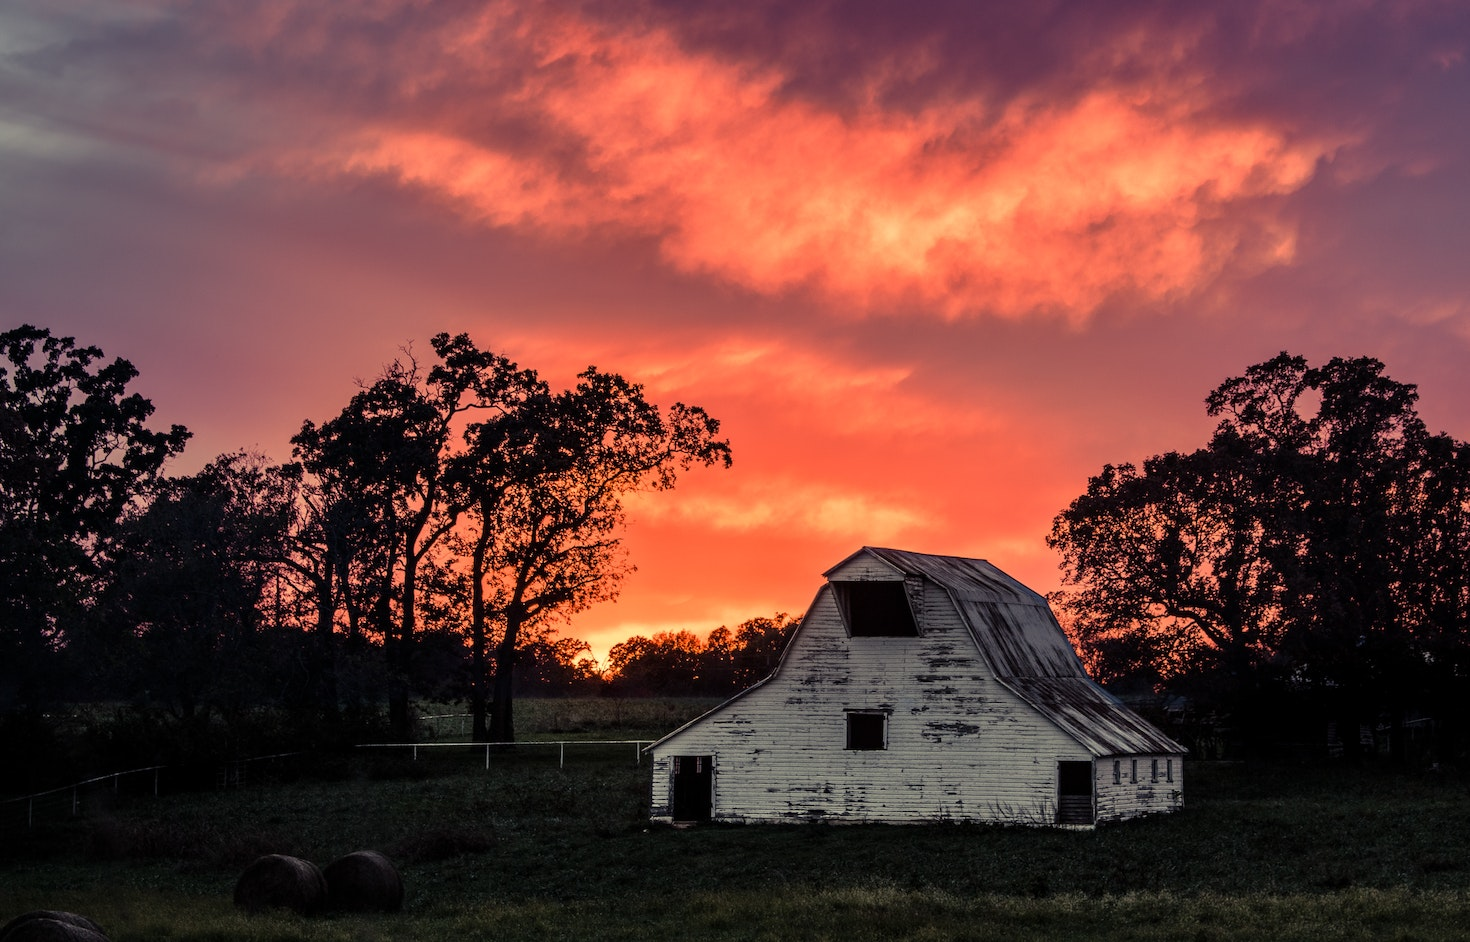 Sunset fades behind a long standing barn along AR 112 on the outskirts of Bentonville, Arkansas © Chris Works / 500px